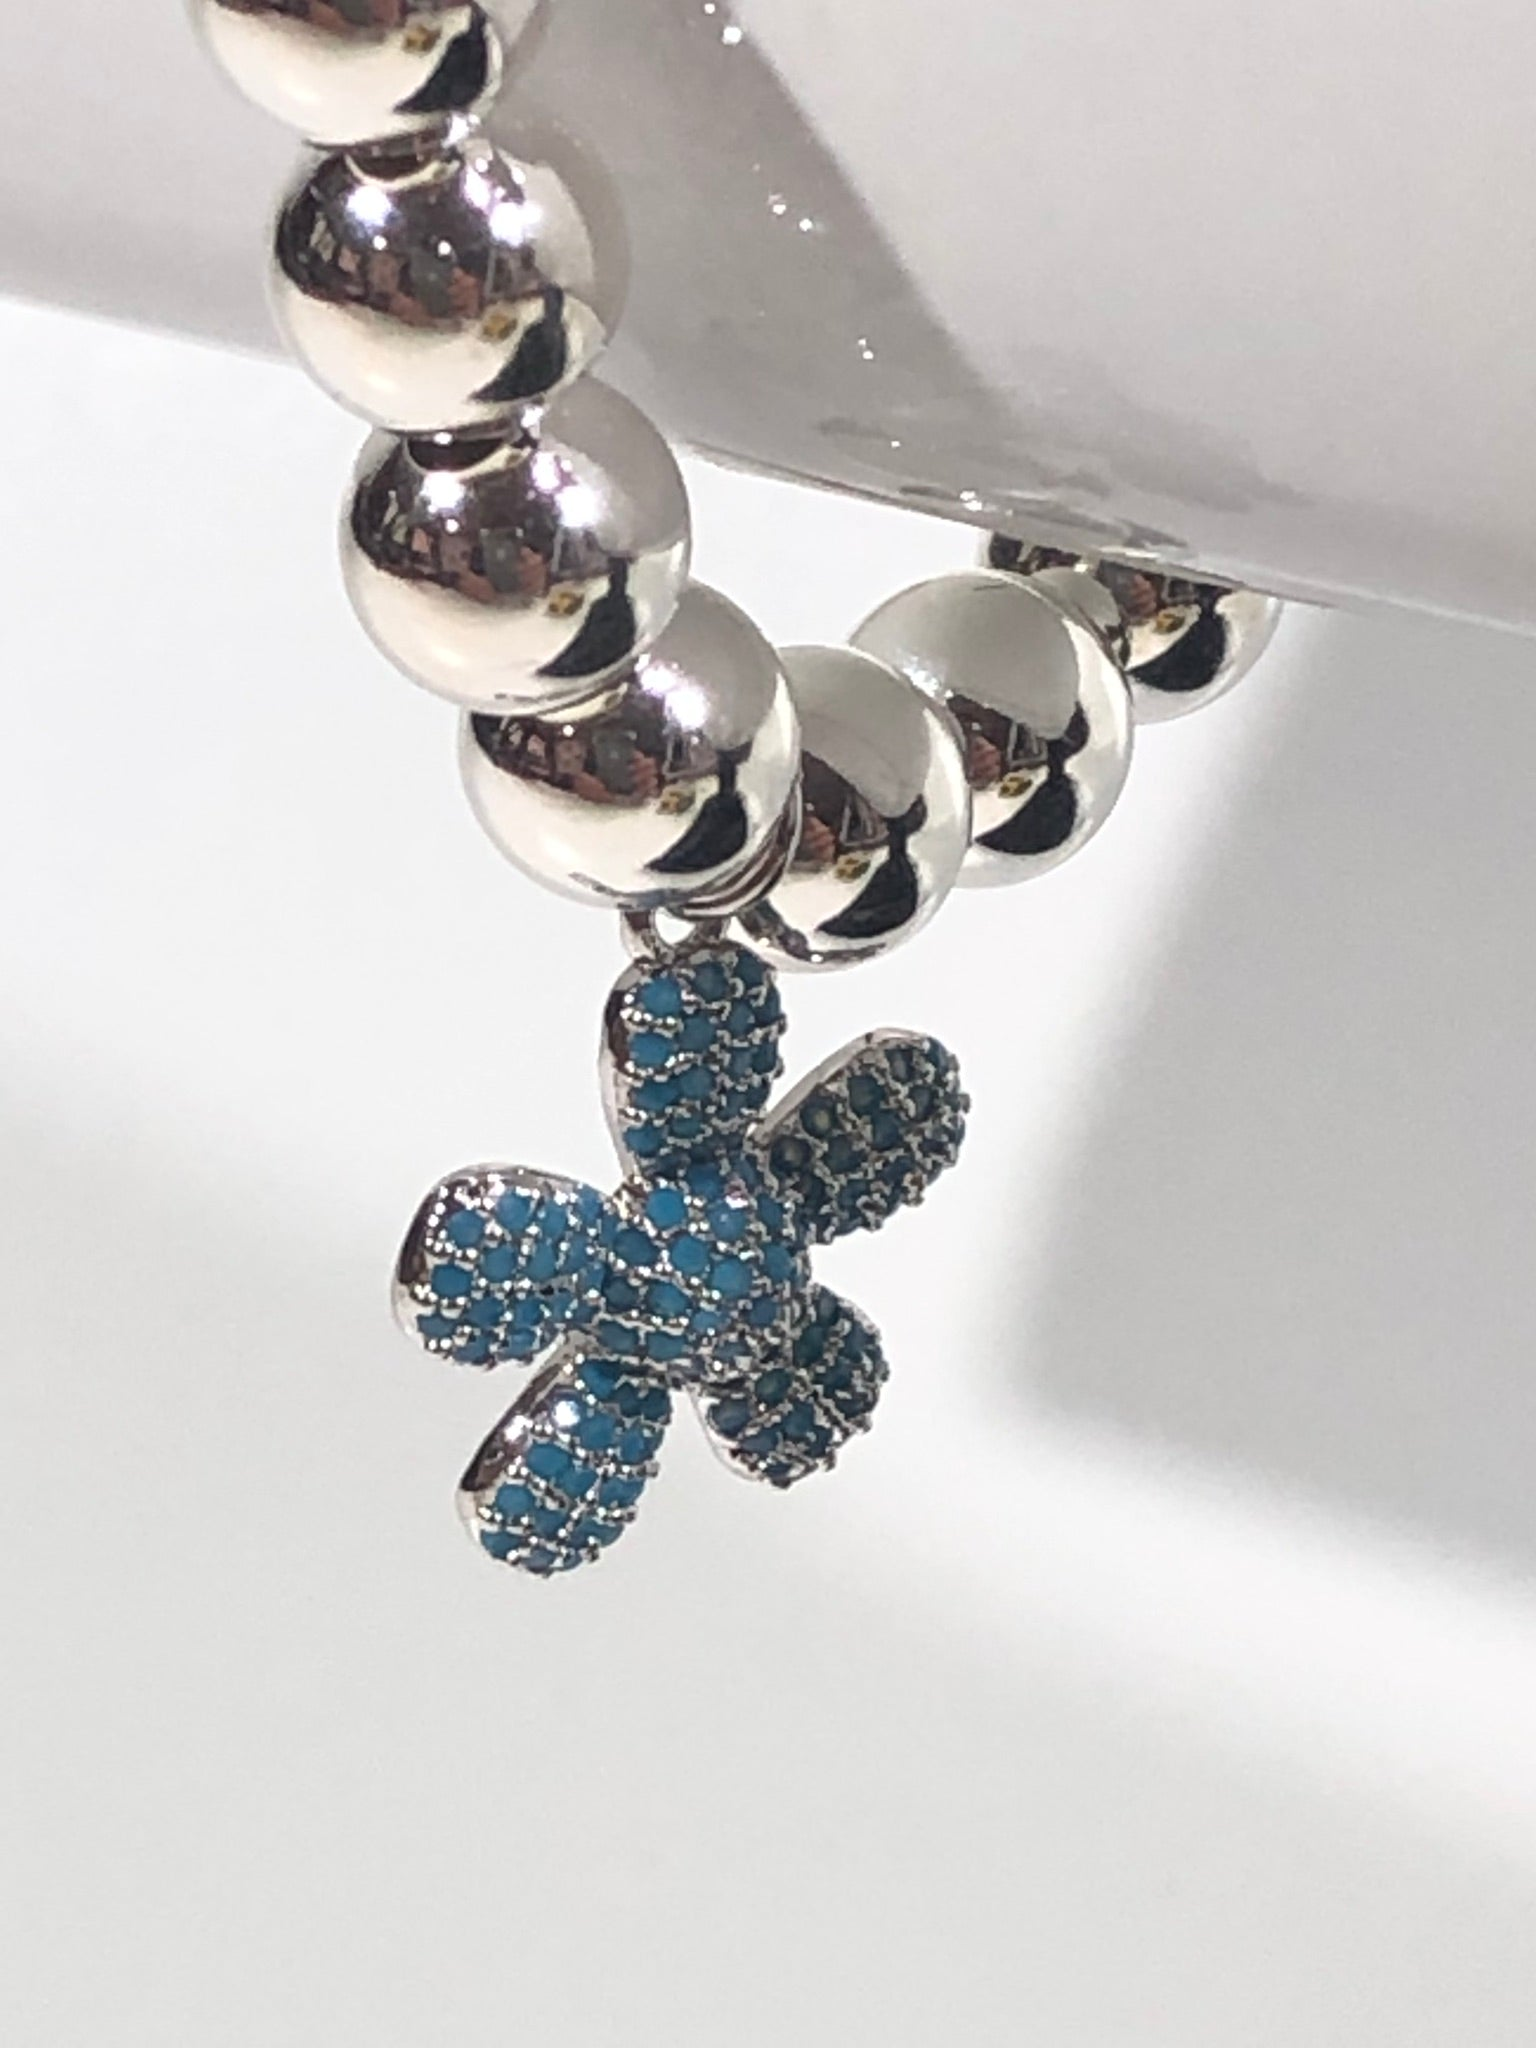 8mm Sterling Silver Bracelet with Blue Jeweled Flower Hanging Charm